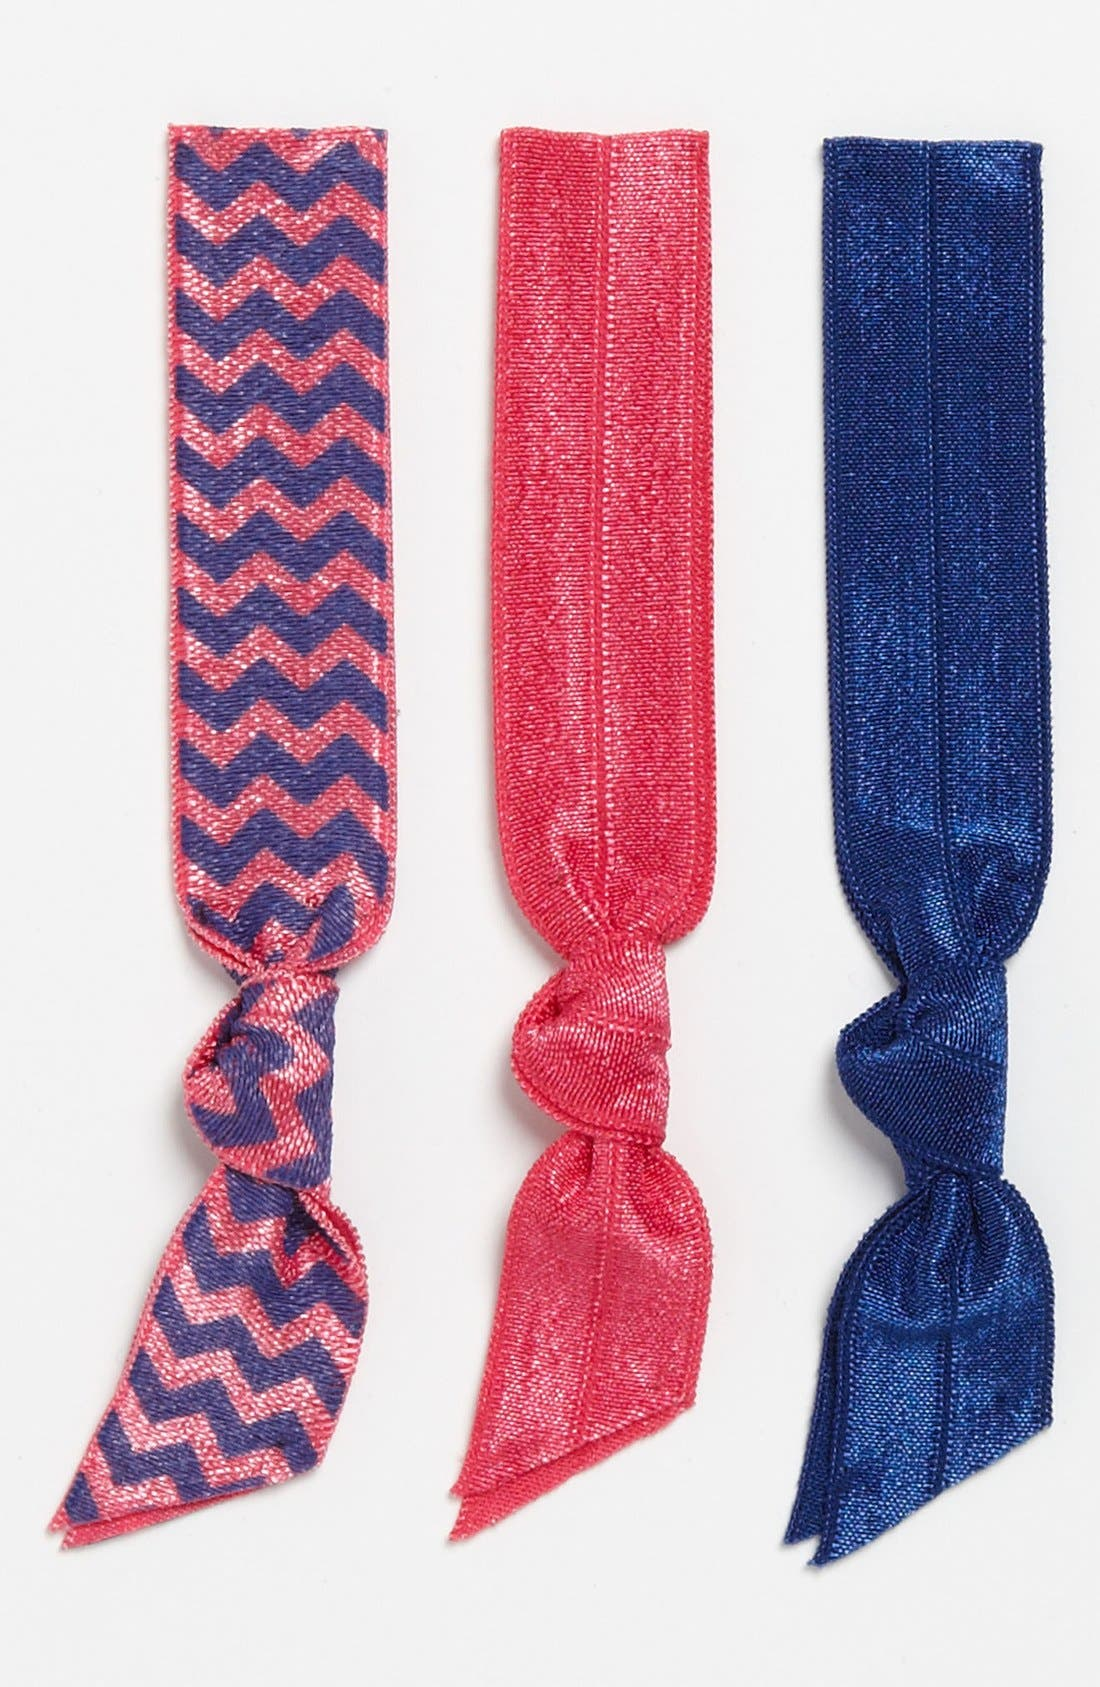 Alternate Image 1 Selected - Emi-Jay 'Chevron' Hair Ties (3-Pack)